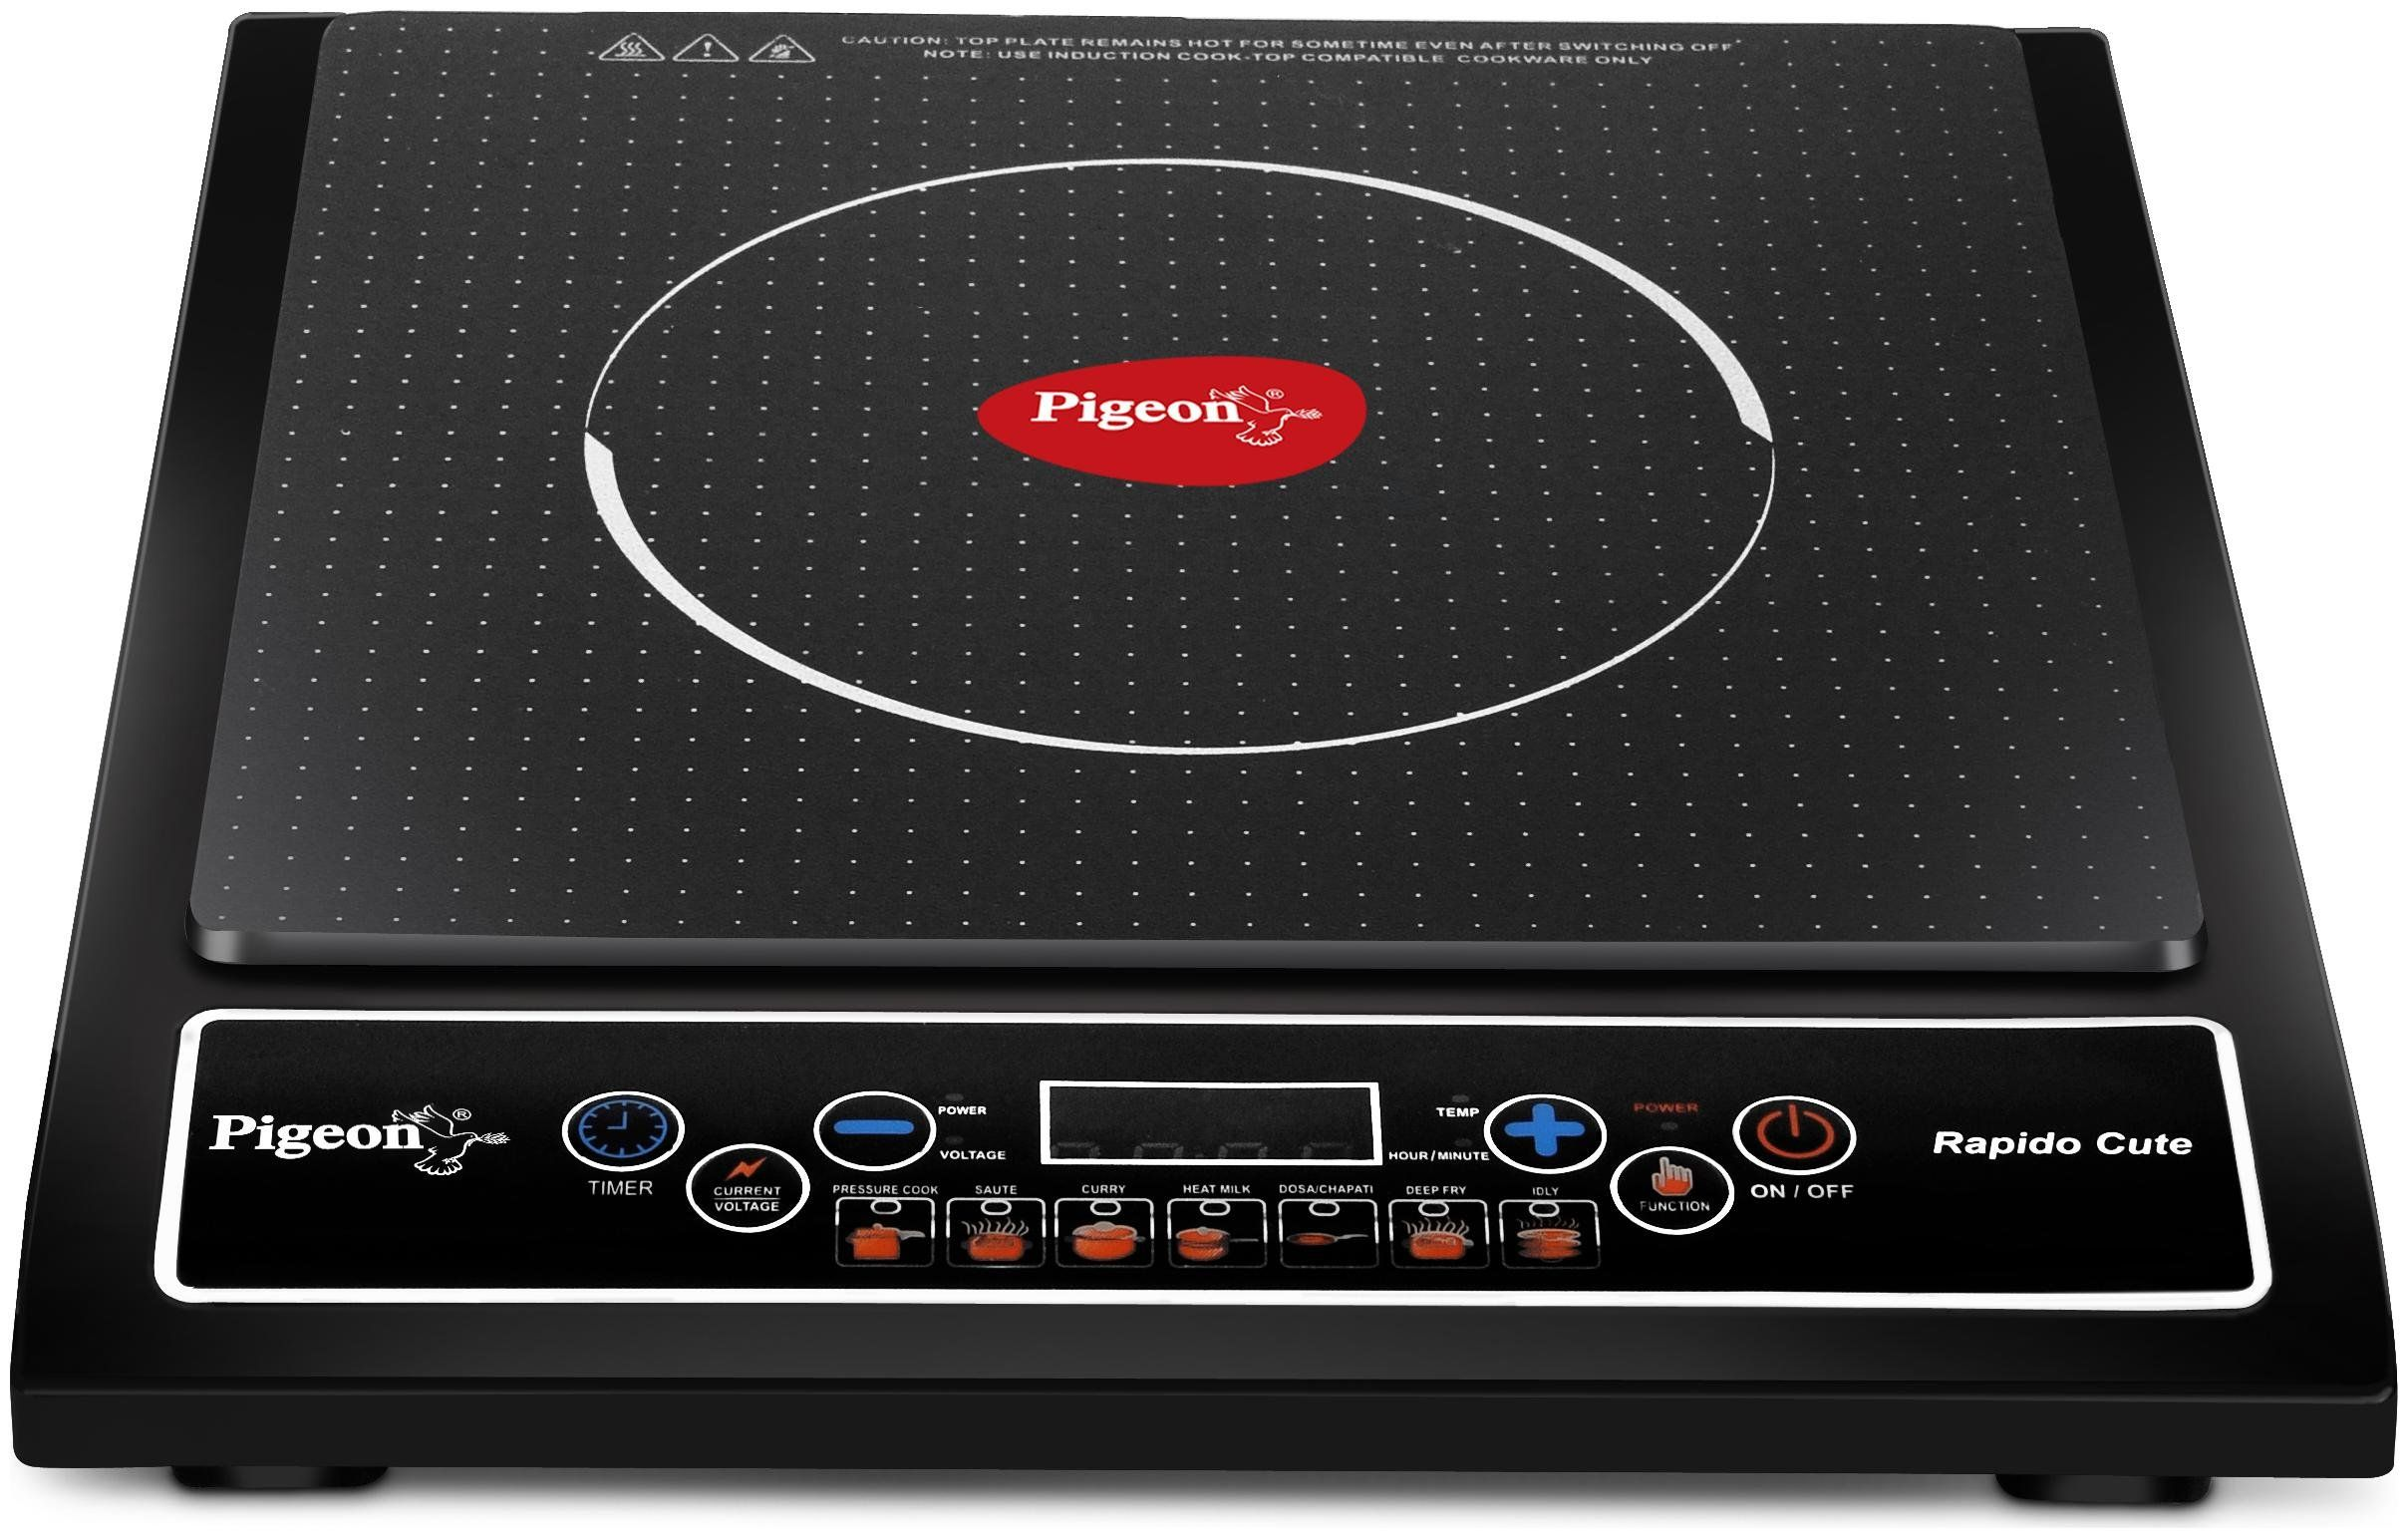 How To Buy The Highest Rated And Best Selling Induction Cooktop 2020 Top Home Gadgets In 2020 Induction Cooktop Cooktop Induction